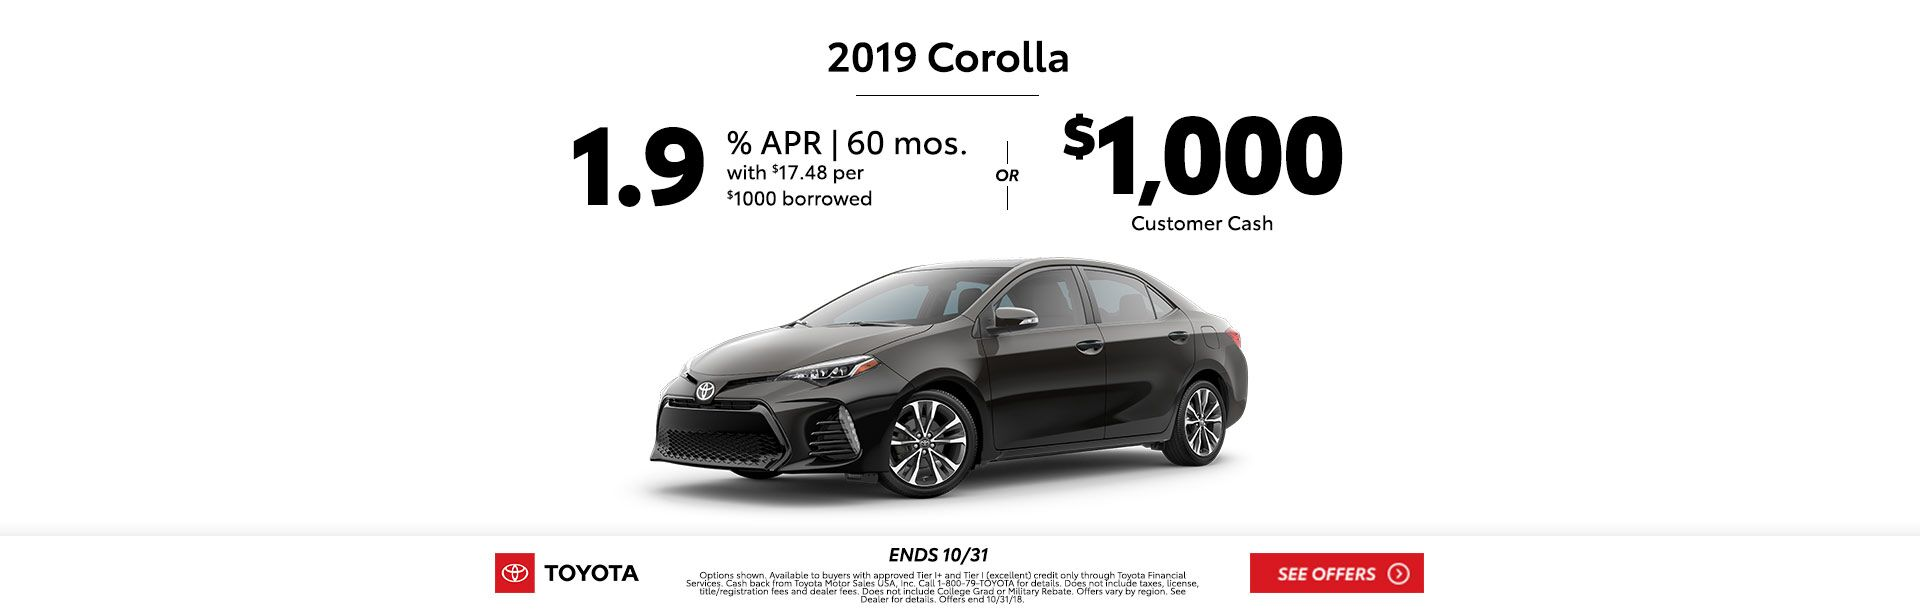 Corolla Customer Cash Oct 2018